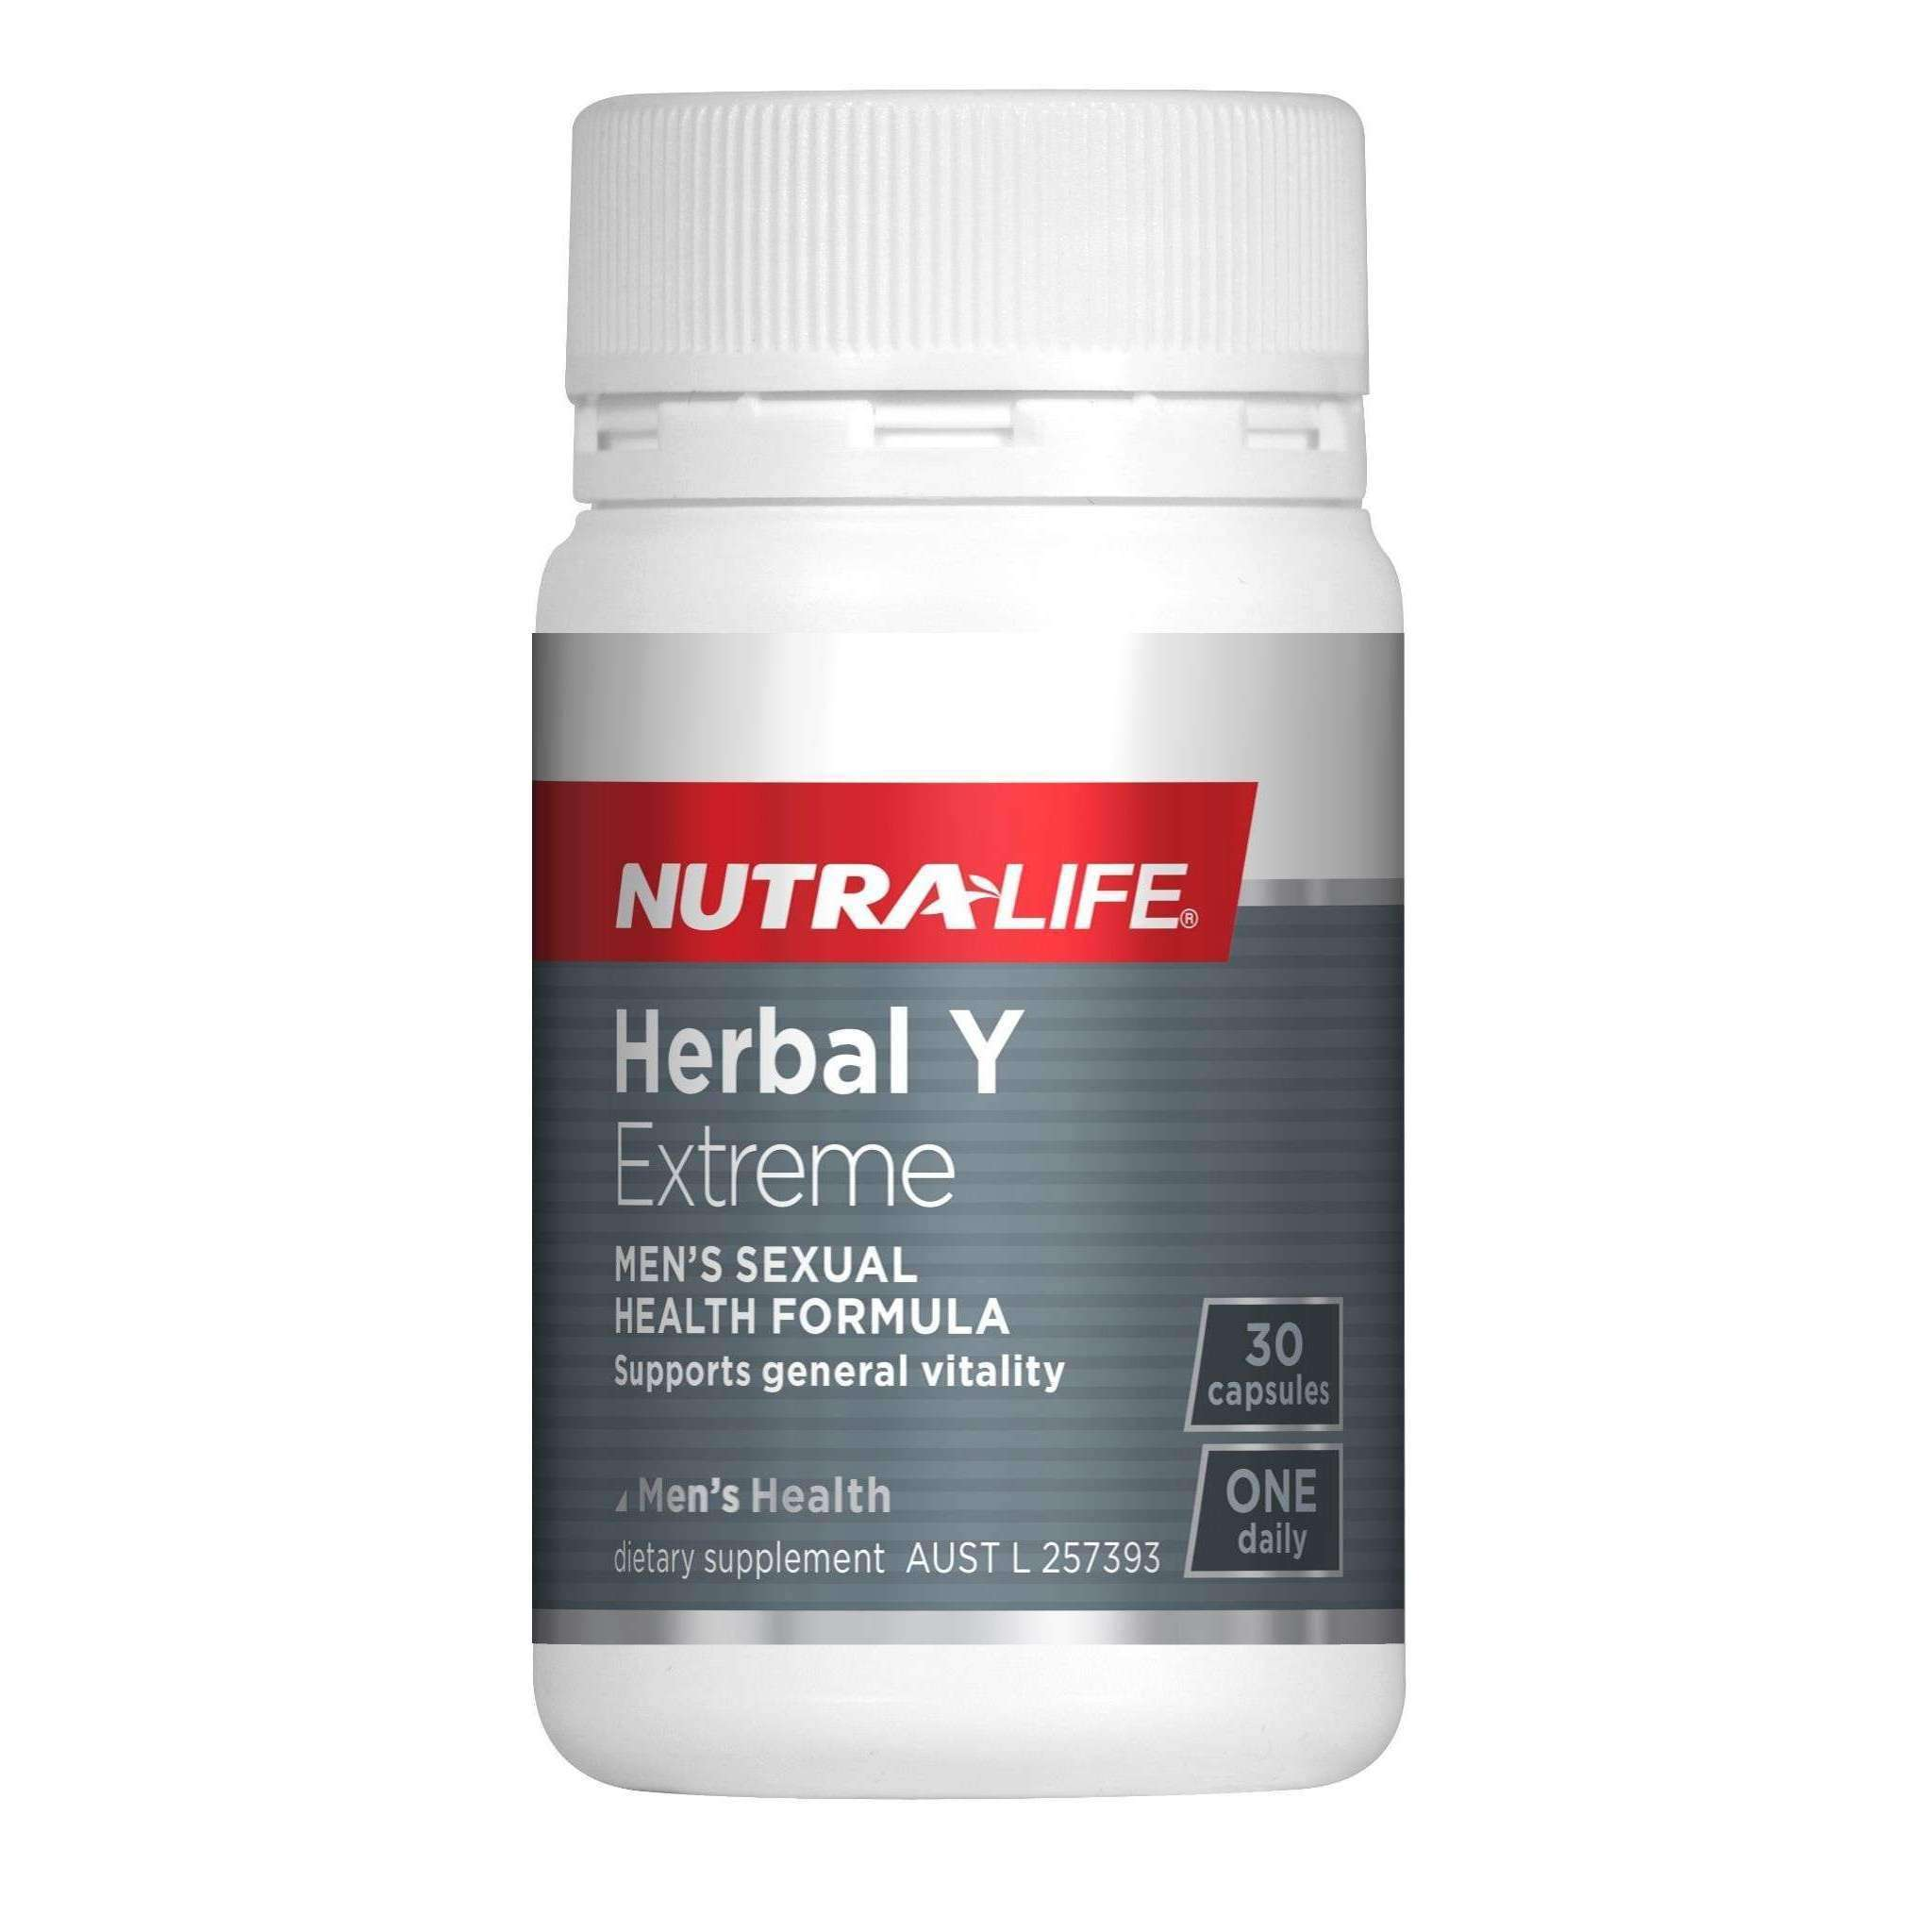 Nutra-Life Herbal Y Extreme for Men